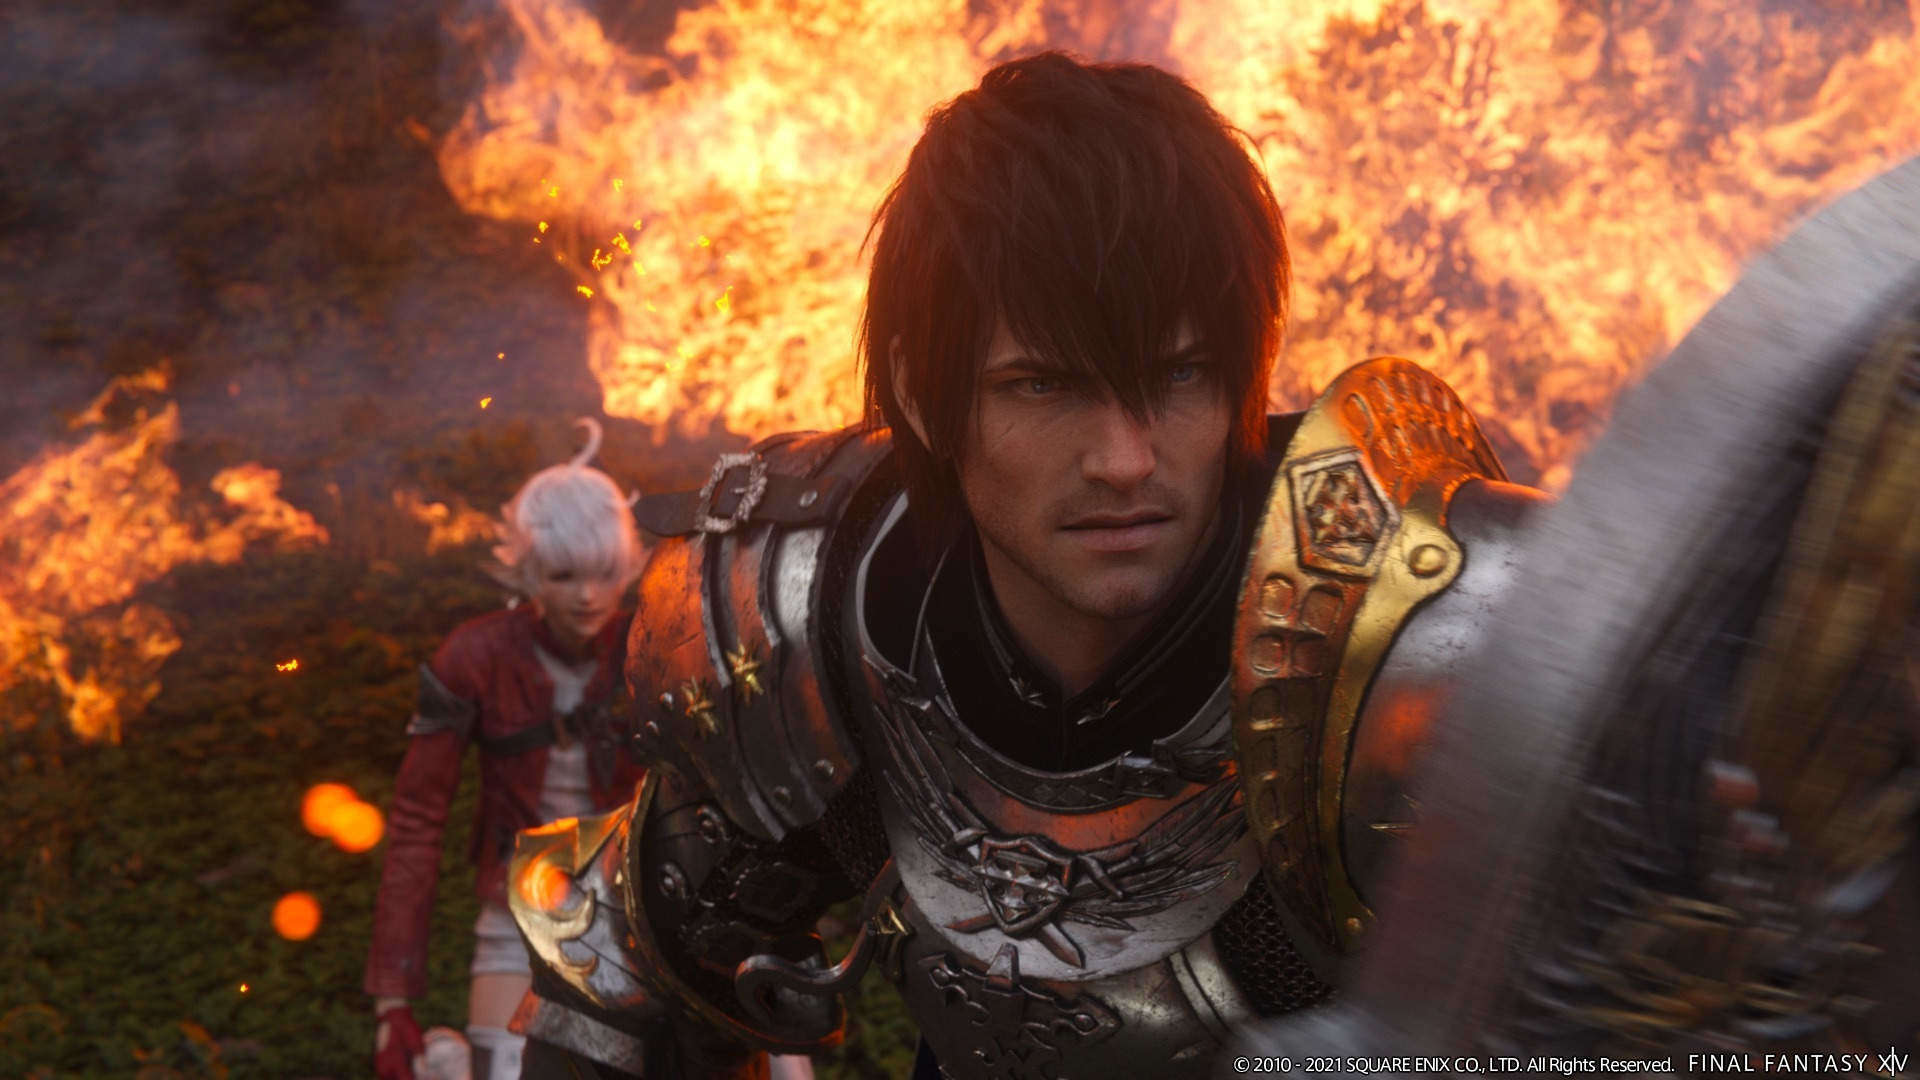 Final Fantasy XIV dazzles with release date and trailer for its Endwalker expansion